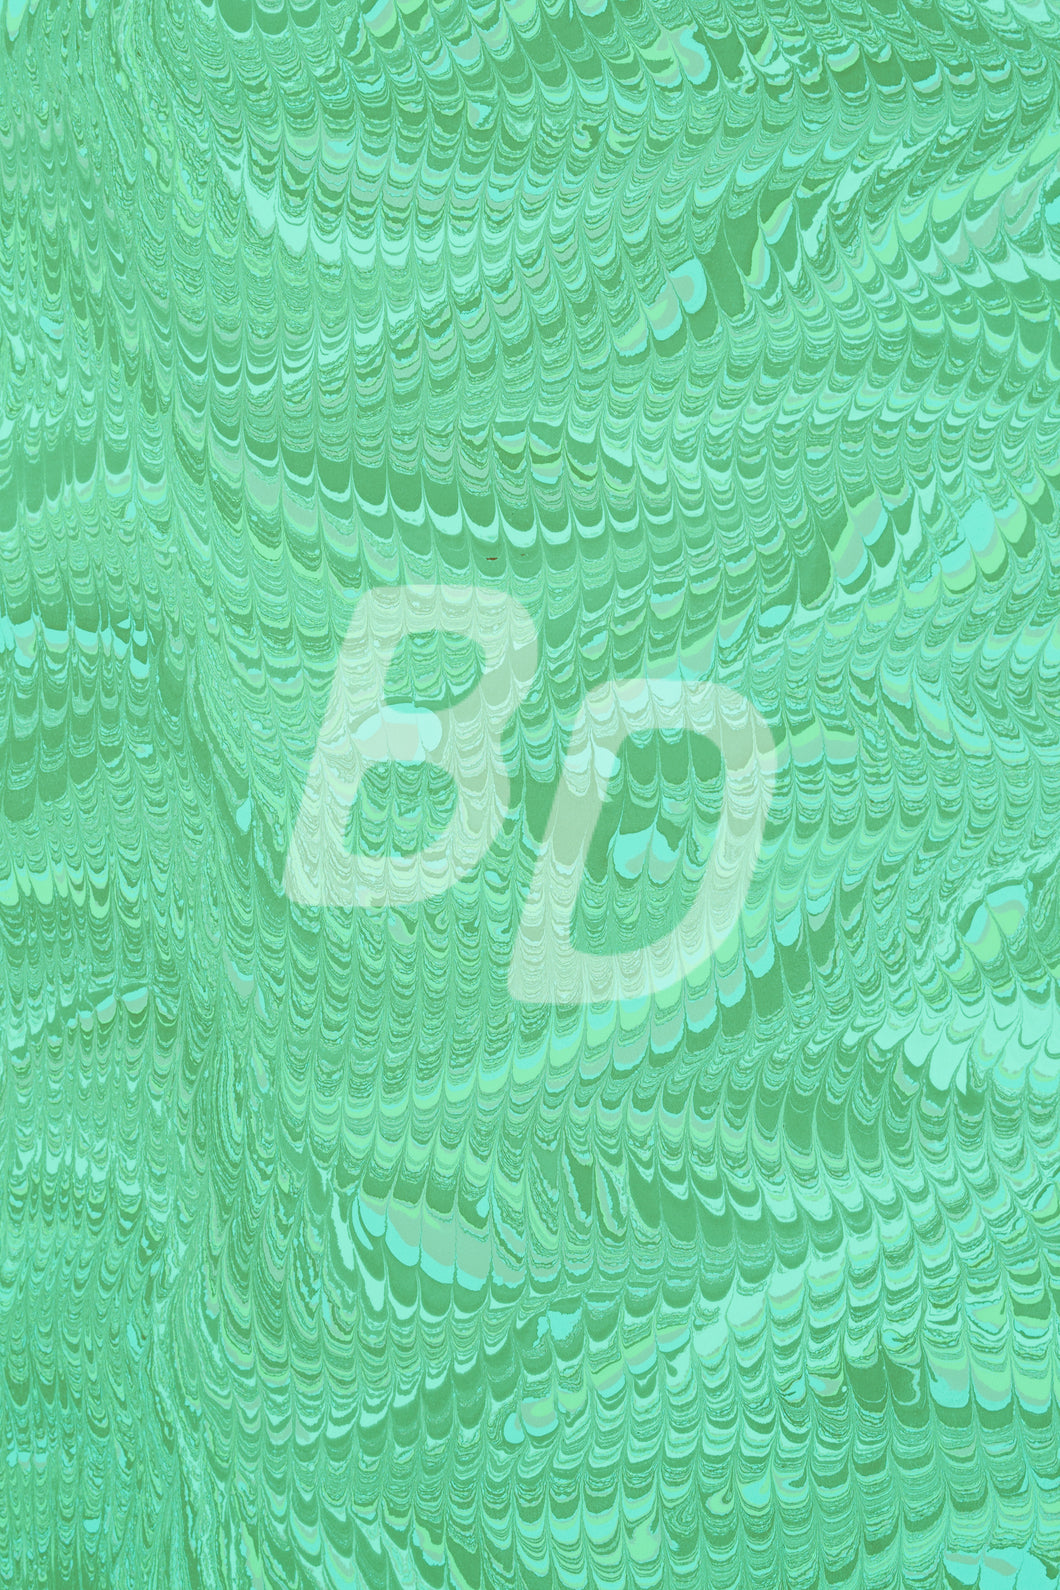 Teal Marbling Stock Photo - Backdropstock.com